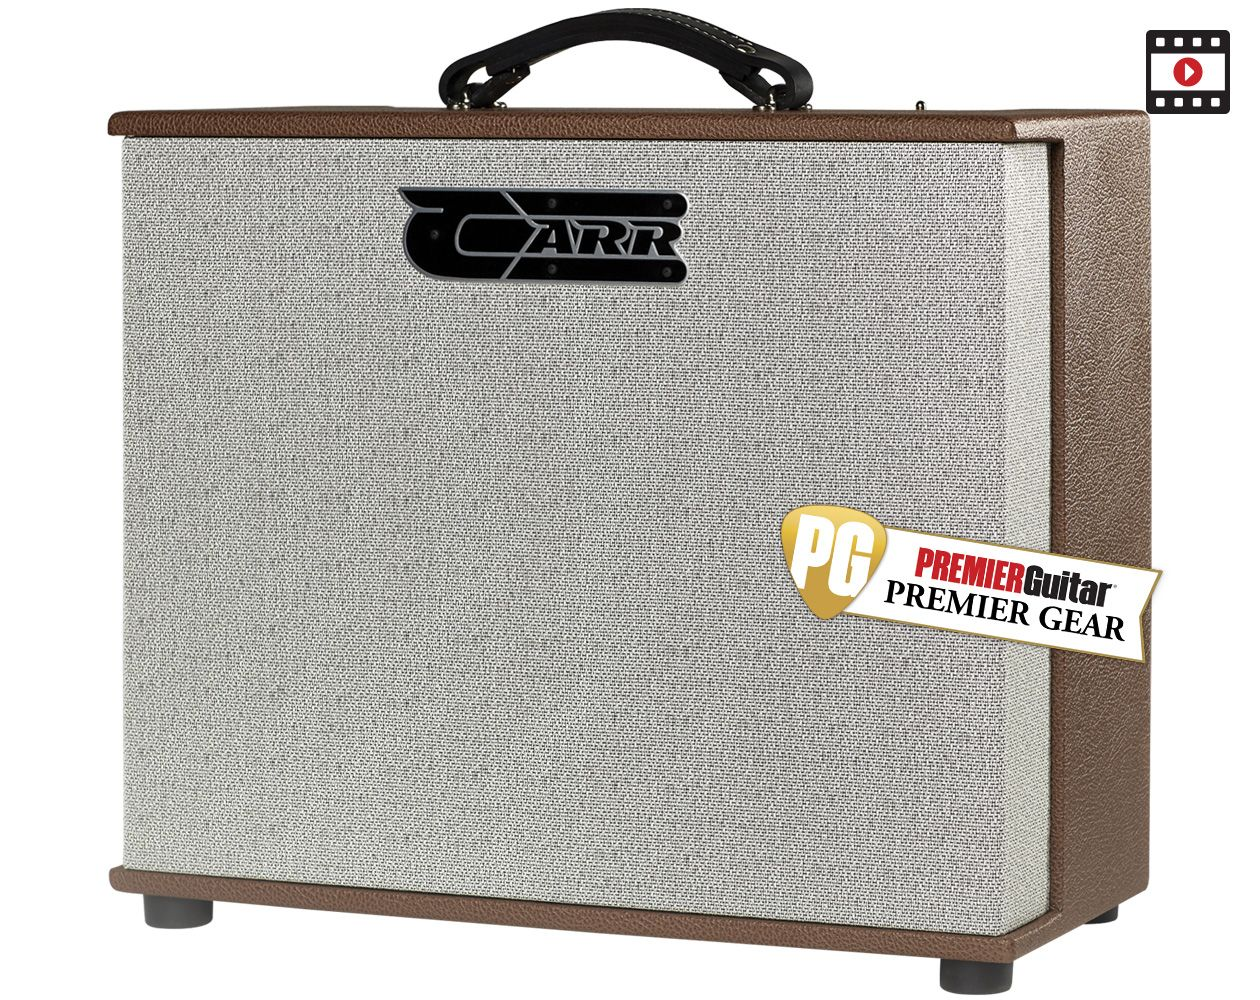 Carr Telstar Review | Guitar Amps, Cabs, Amp Mods, and More